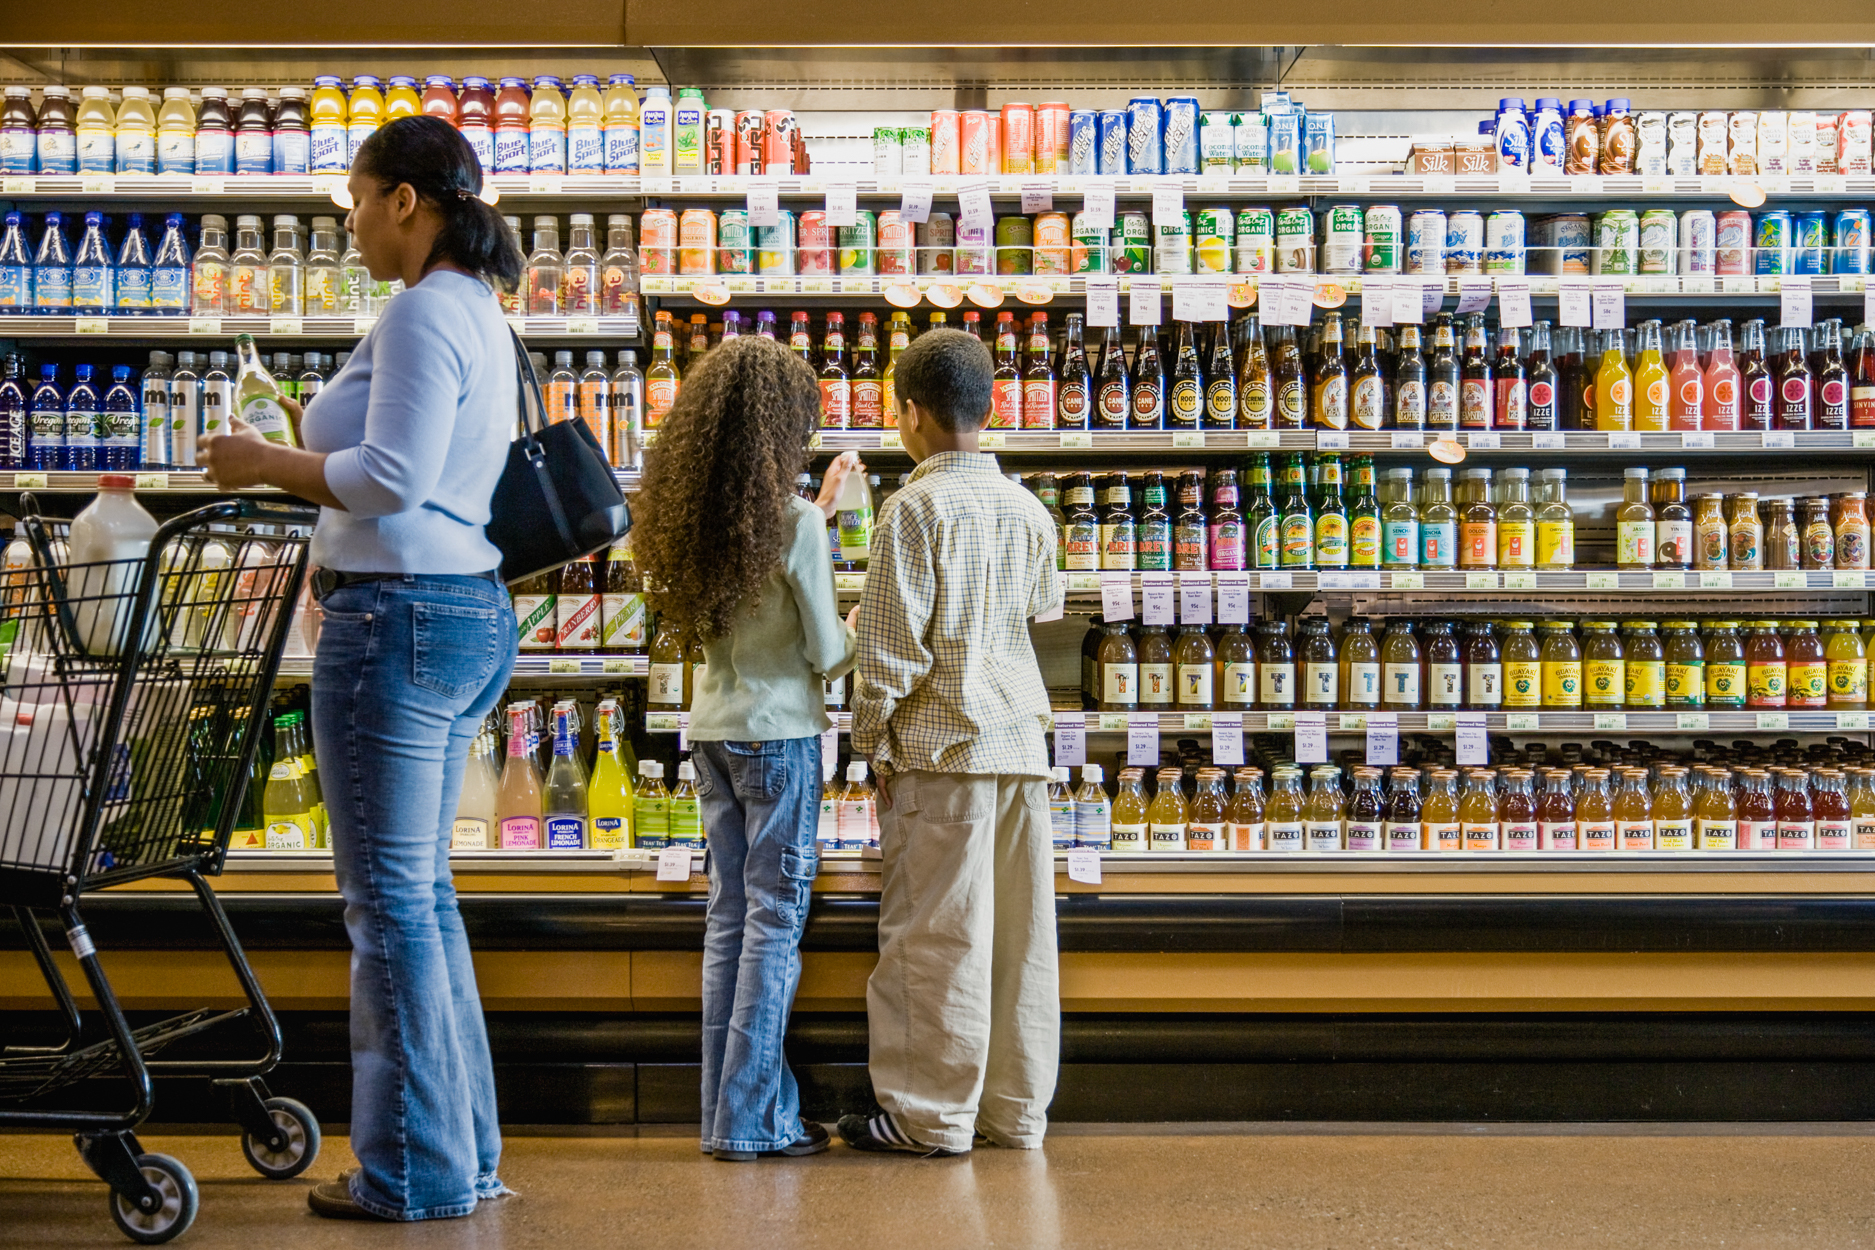 How To Shop For Food Safely During The Coronavirus Outbreak